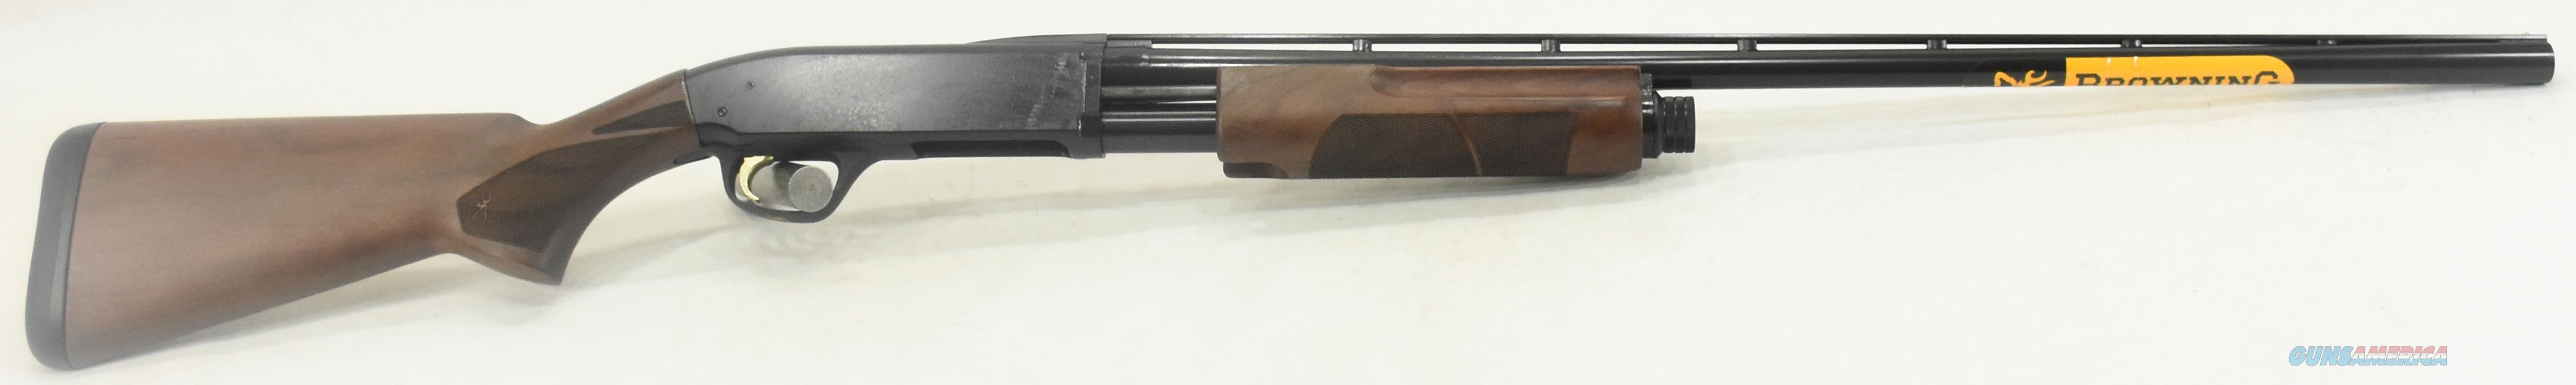 BPS Field Walnut 20Ga 28-3In 012286604  Guns > Shotguns > Browning Shotguns > Pump Action > Hunting